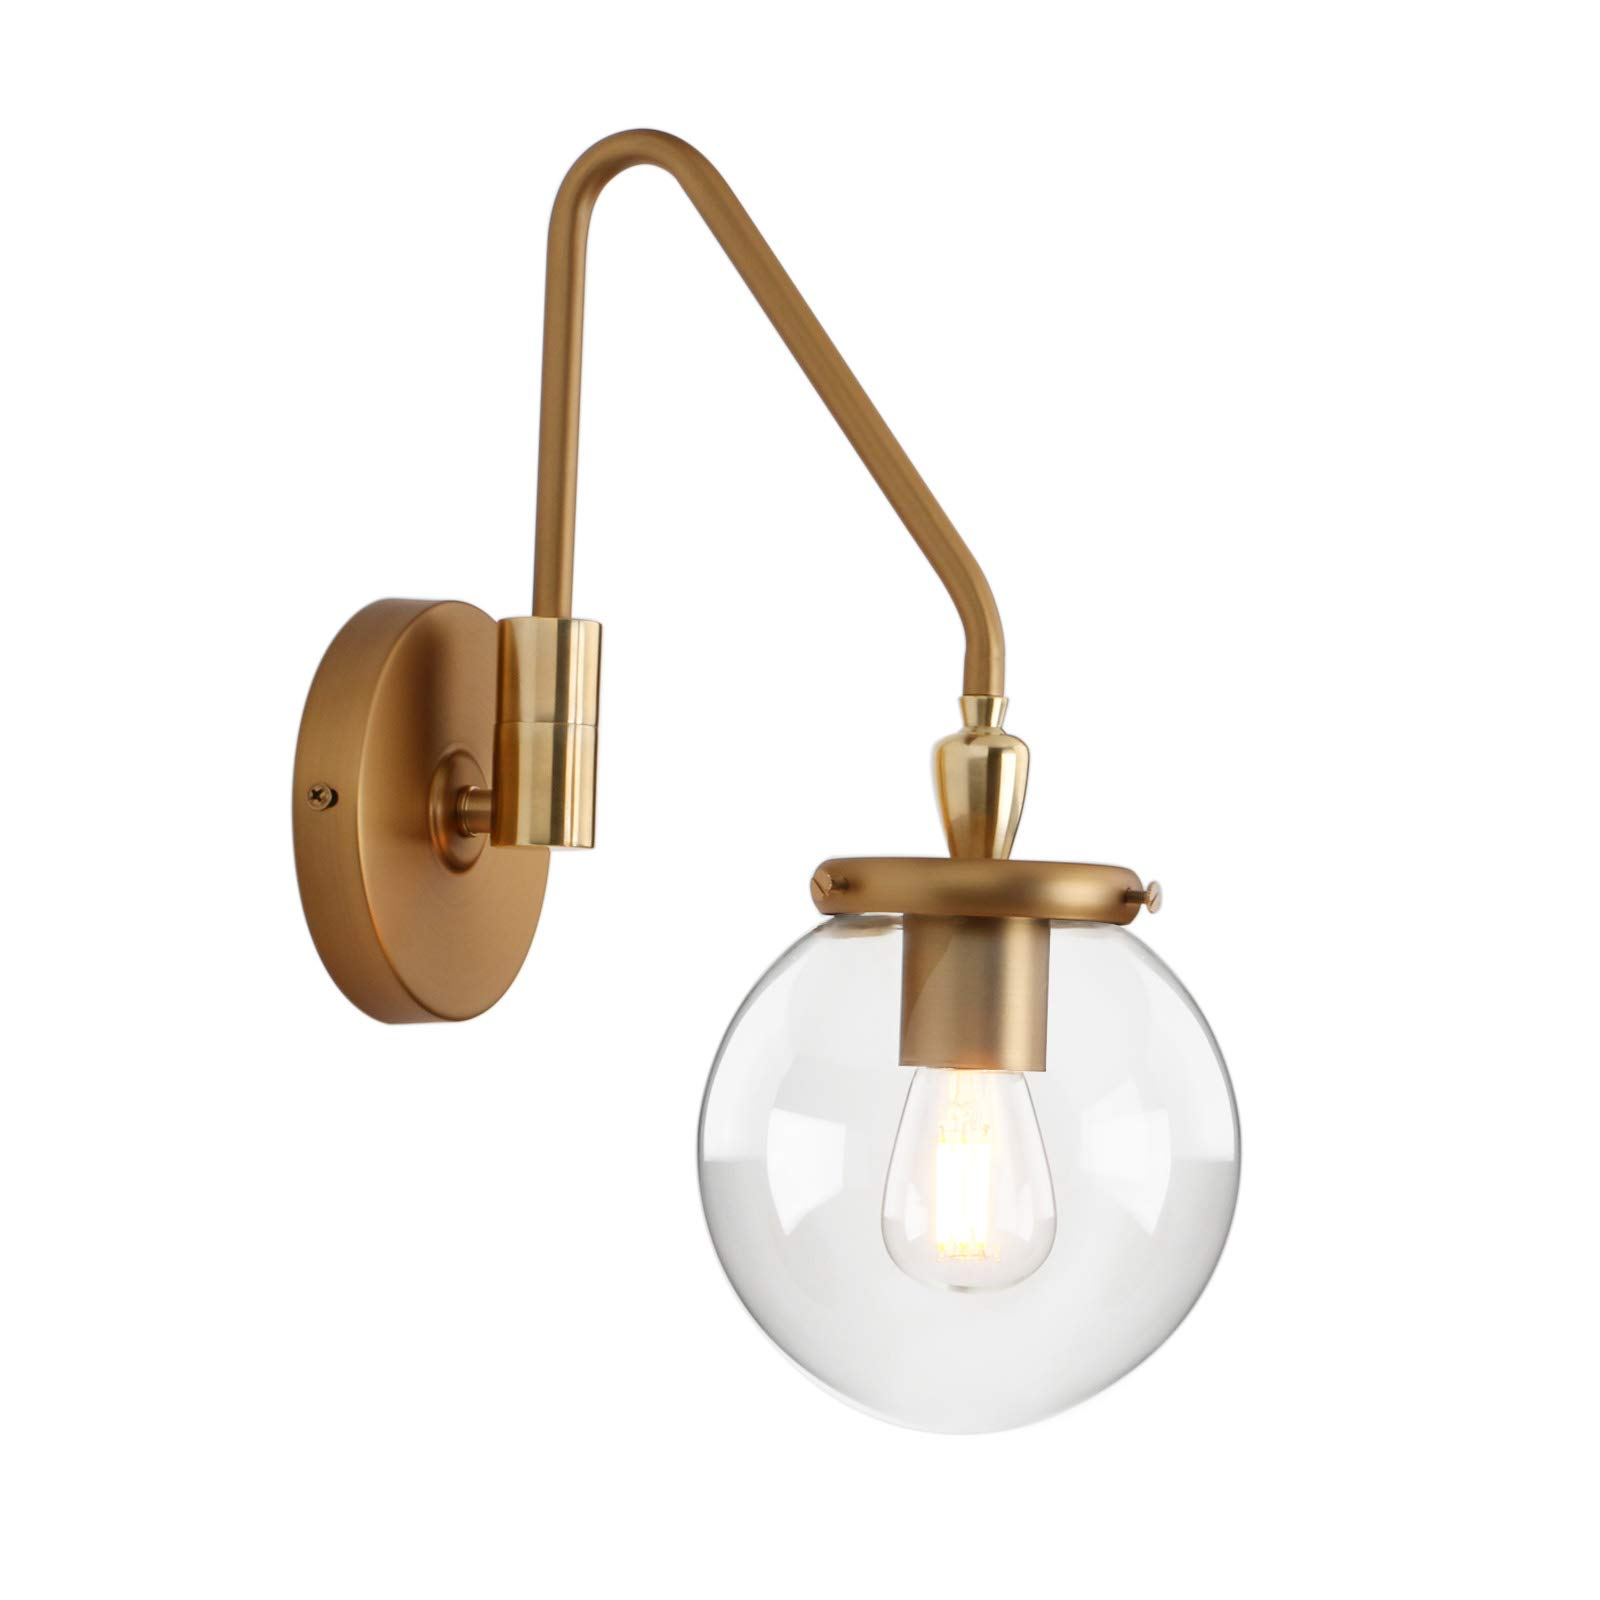 Adjustable Wall Light Fixtures Hardwired Swing Arm Wall Lamp for Bedside Lighting Black Pathson Brass Wall Sconce Industrial Vintage Style for E26 Bulbs